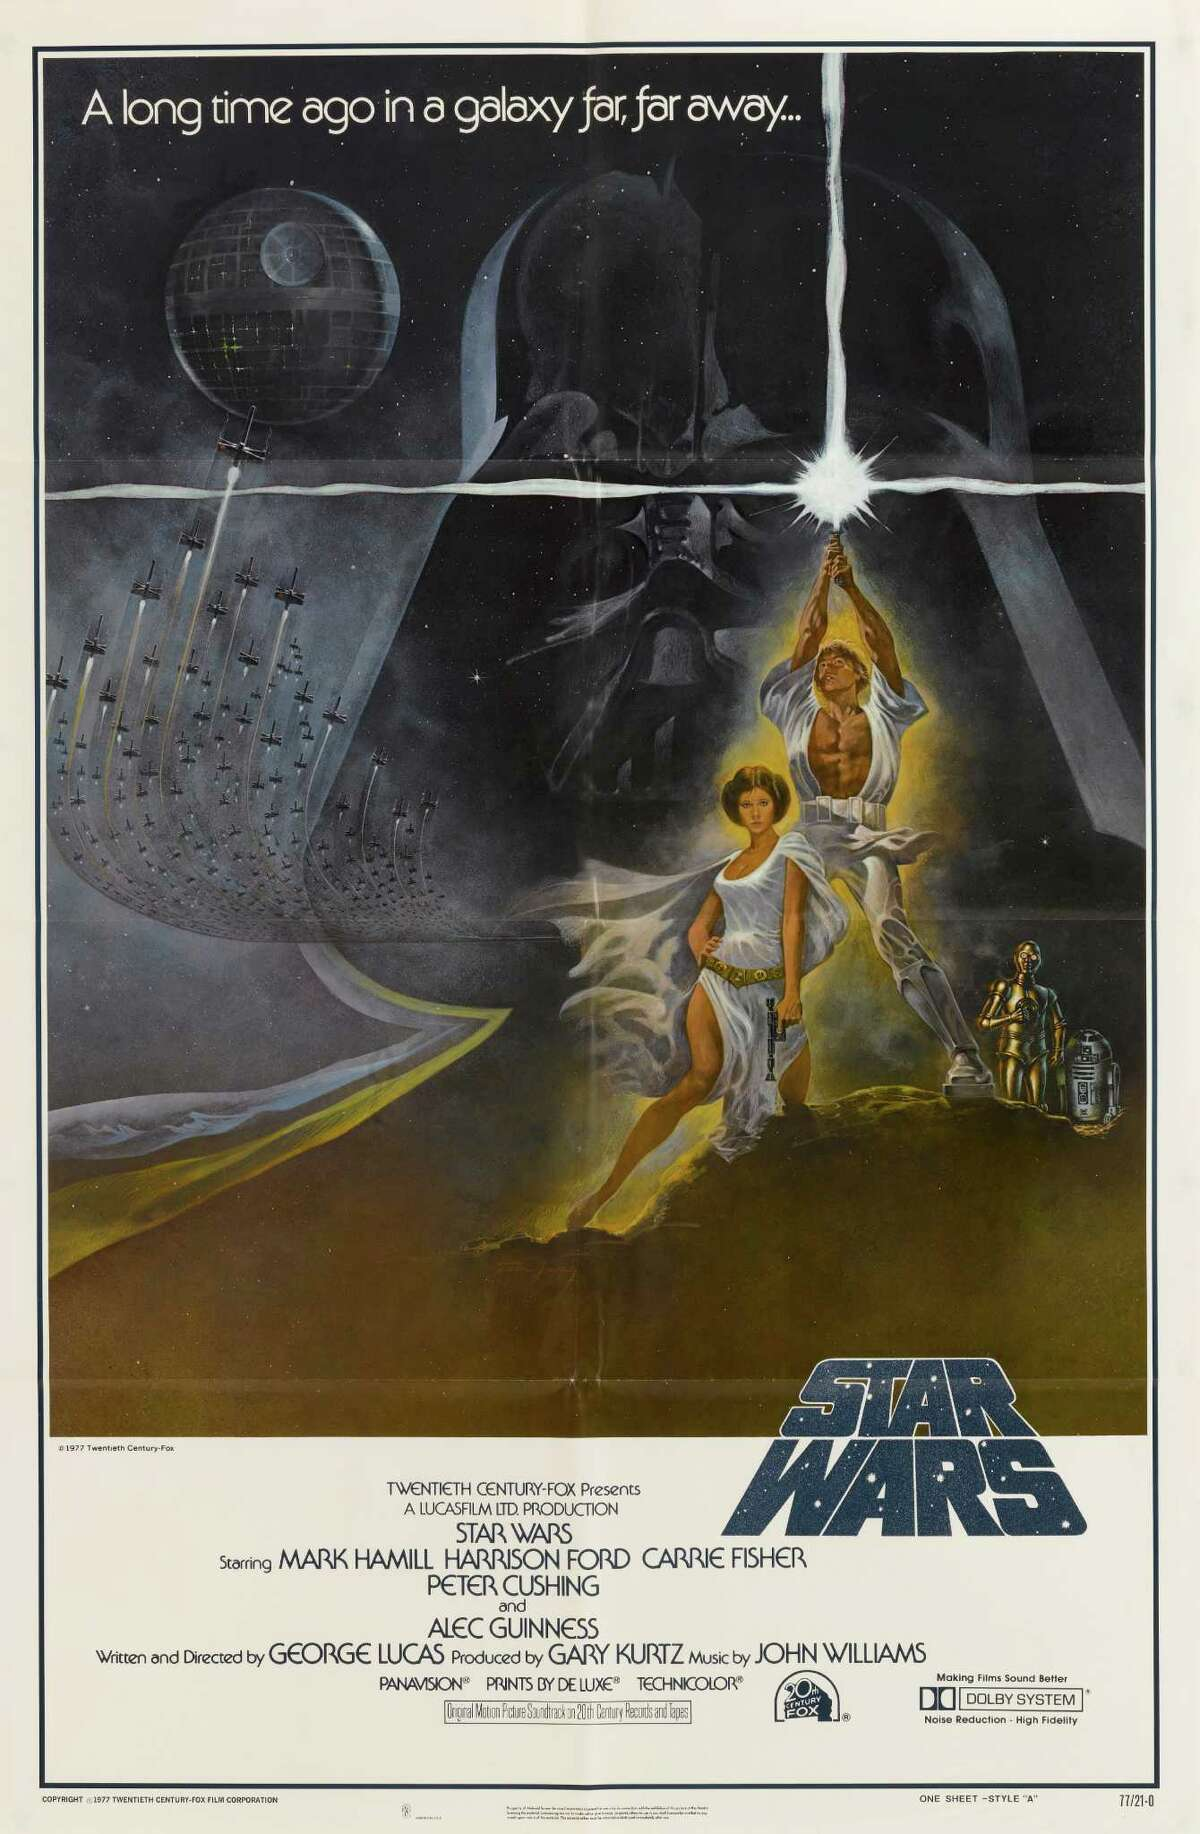 A poster for George Lucas' 1977 fantasy film 'Star Wars' starring Mark Hamill and Carrie Fisher.